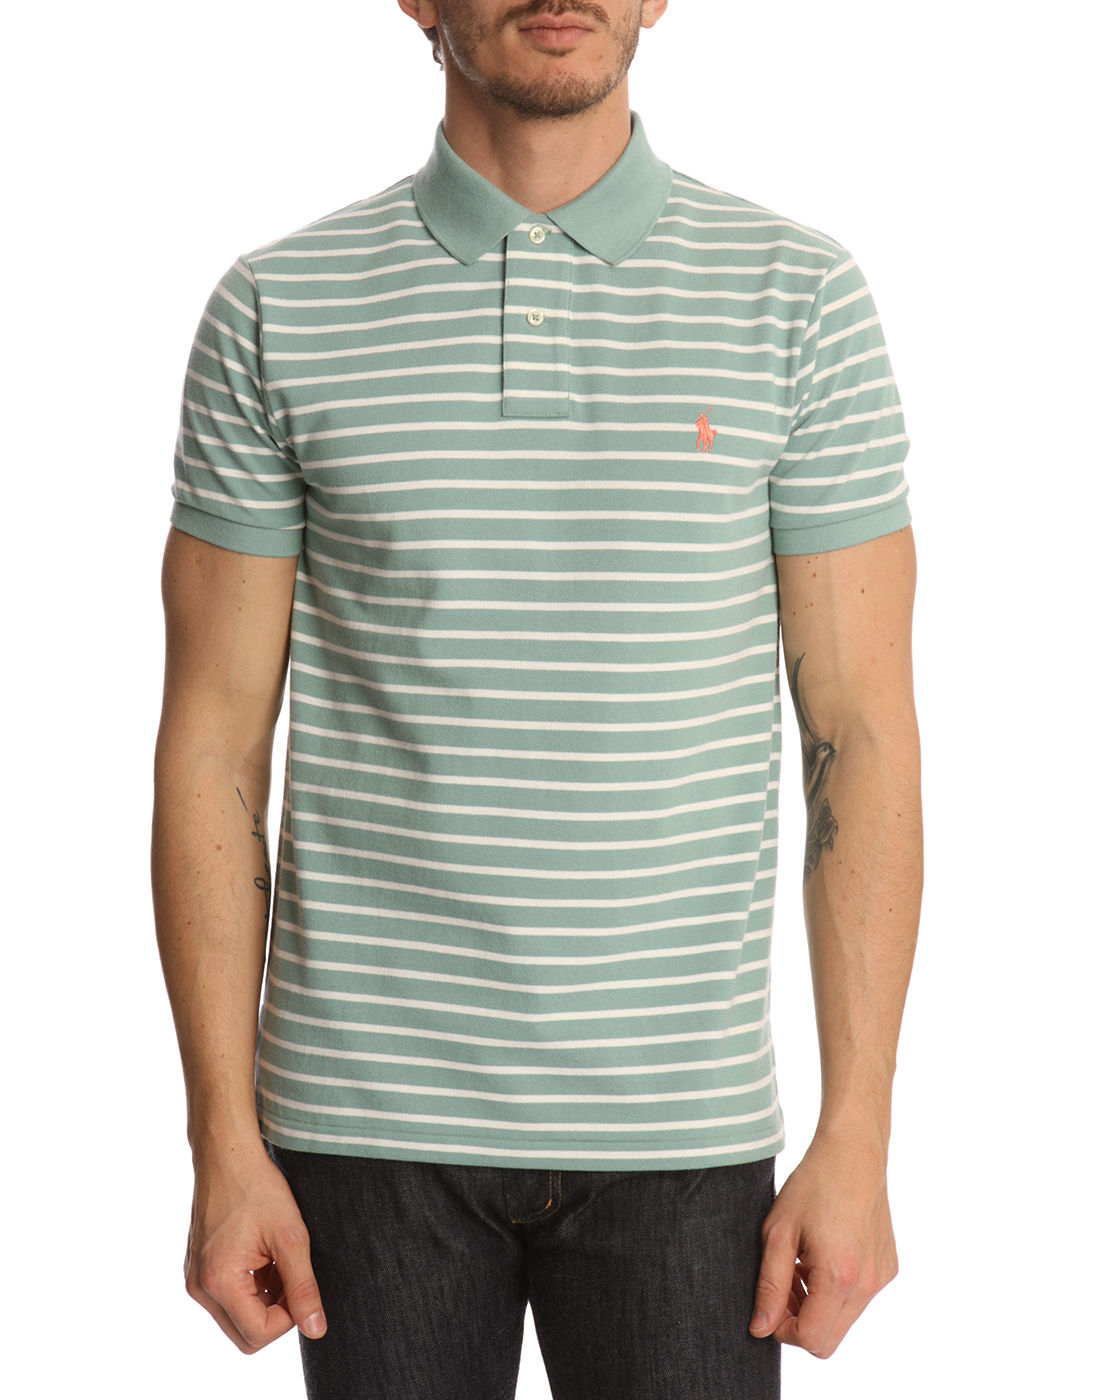 polo ralph lauren custom fit faded green striped polo